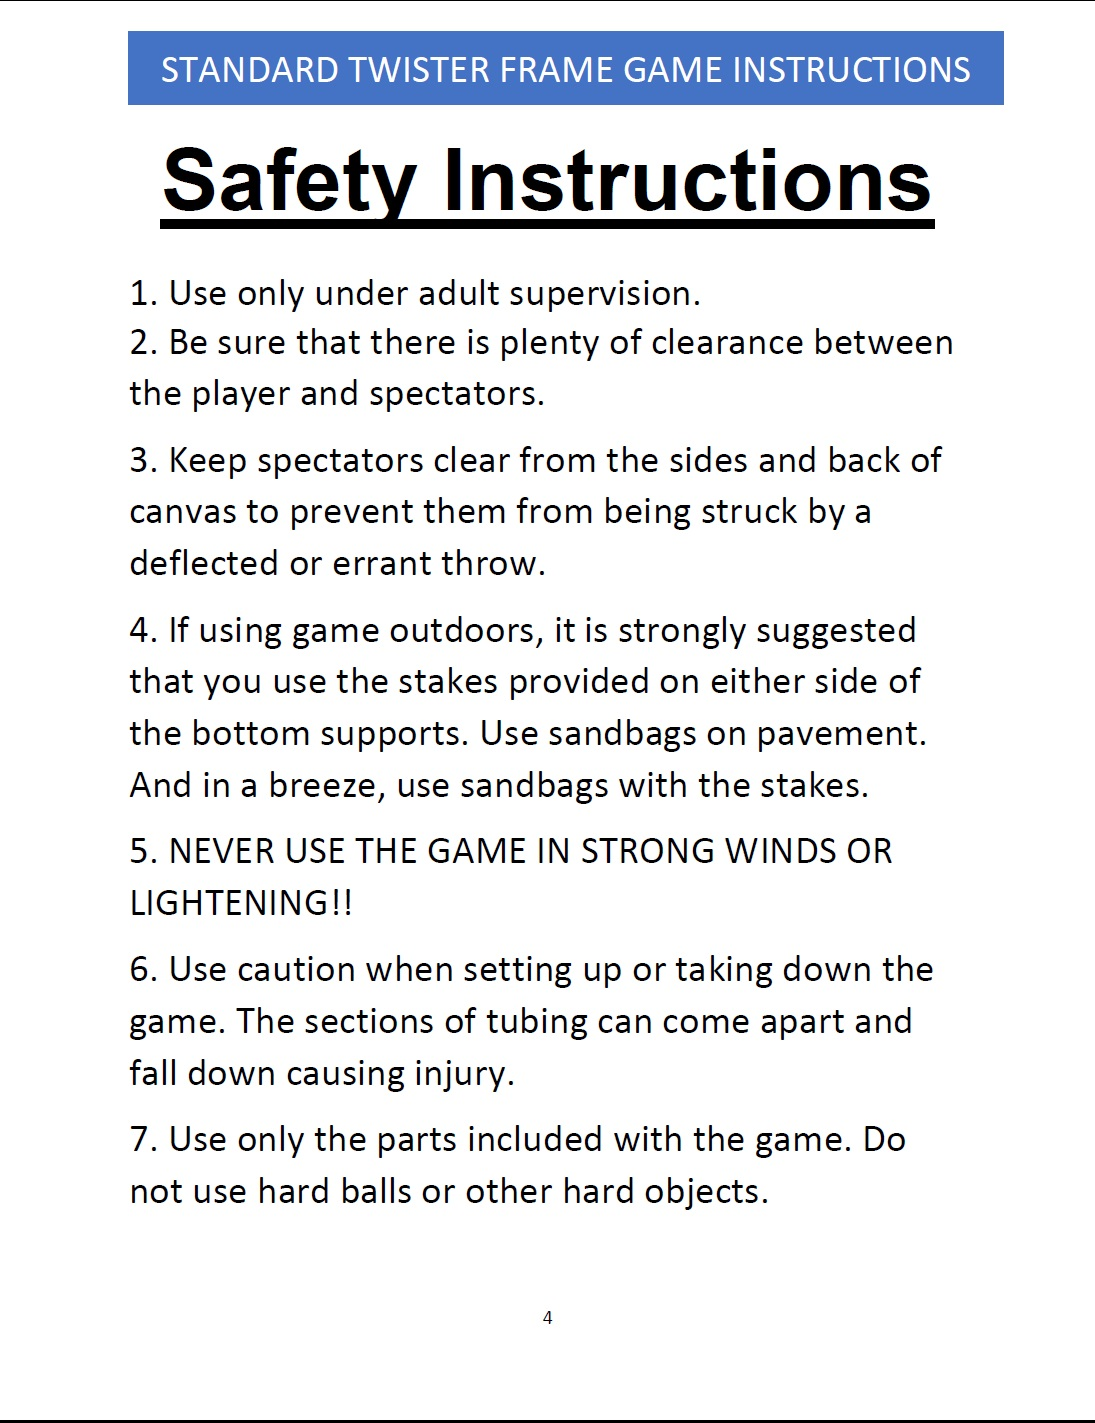 standard-twister-frame-game-instructions-page-4.jpg